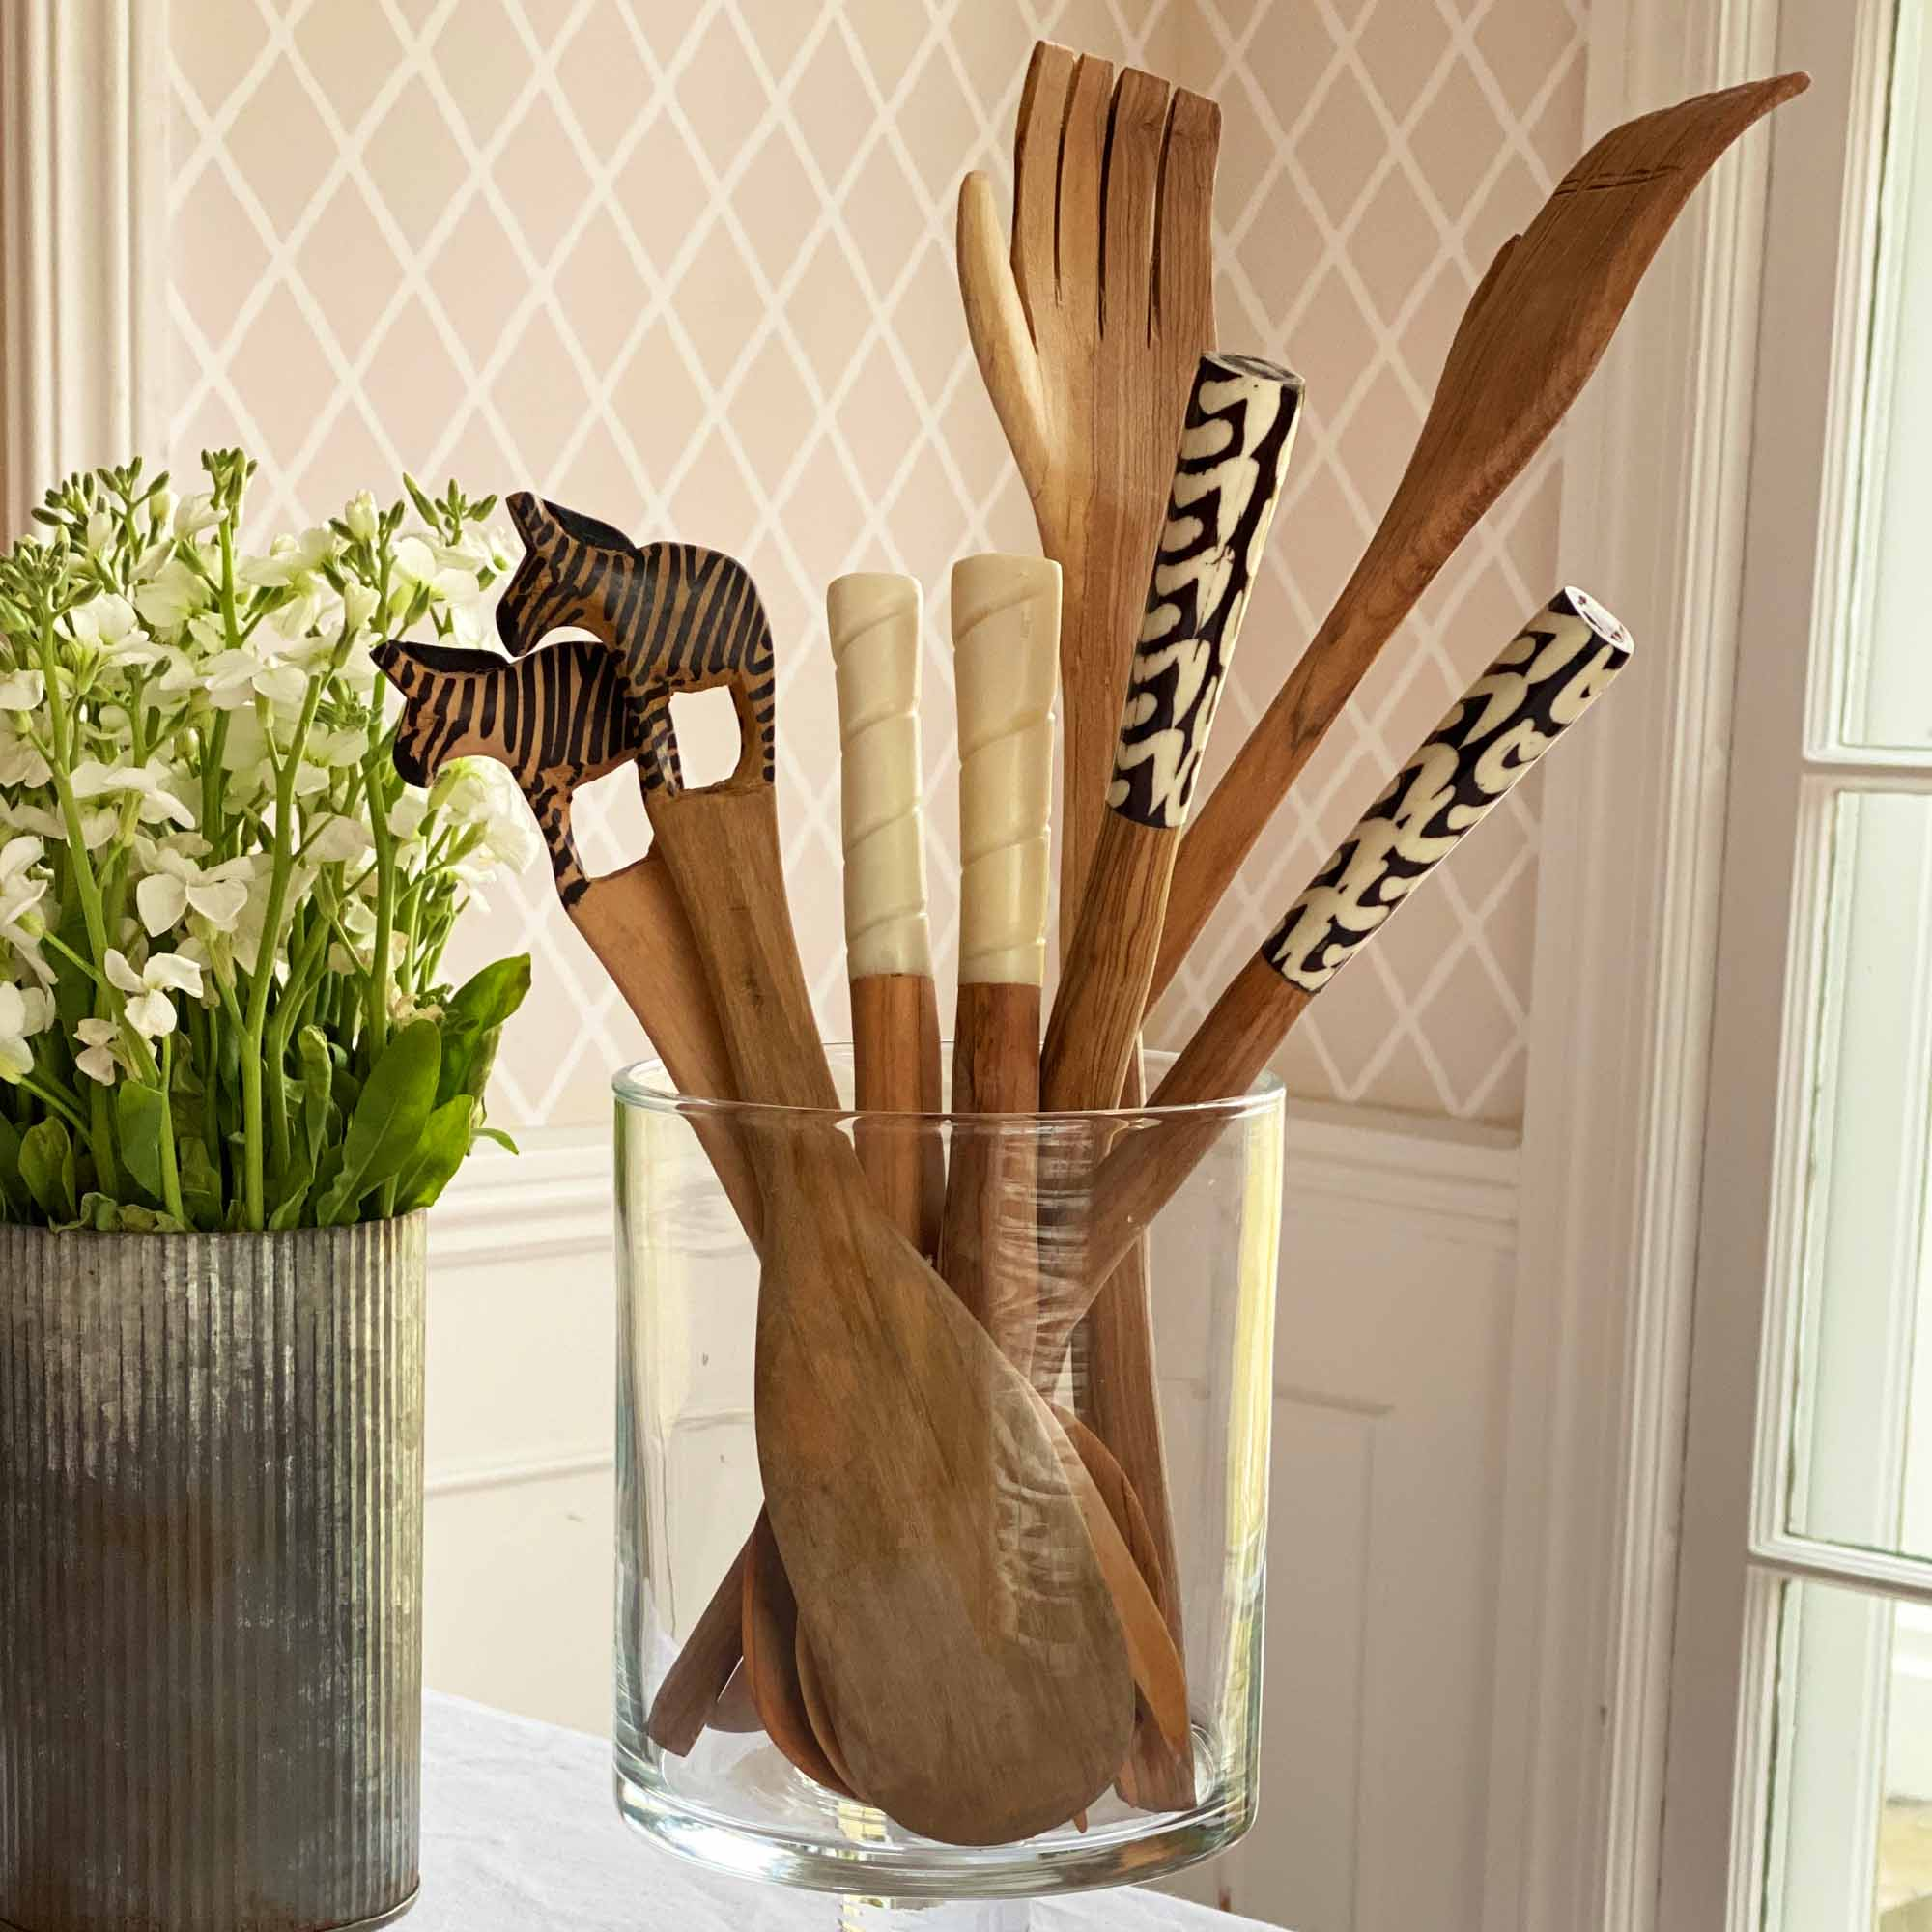 Wood Salad Servers in Glass Jar